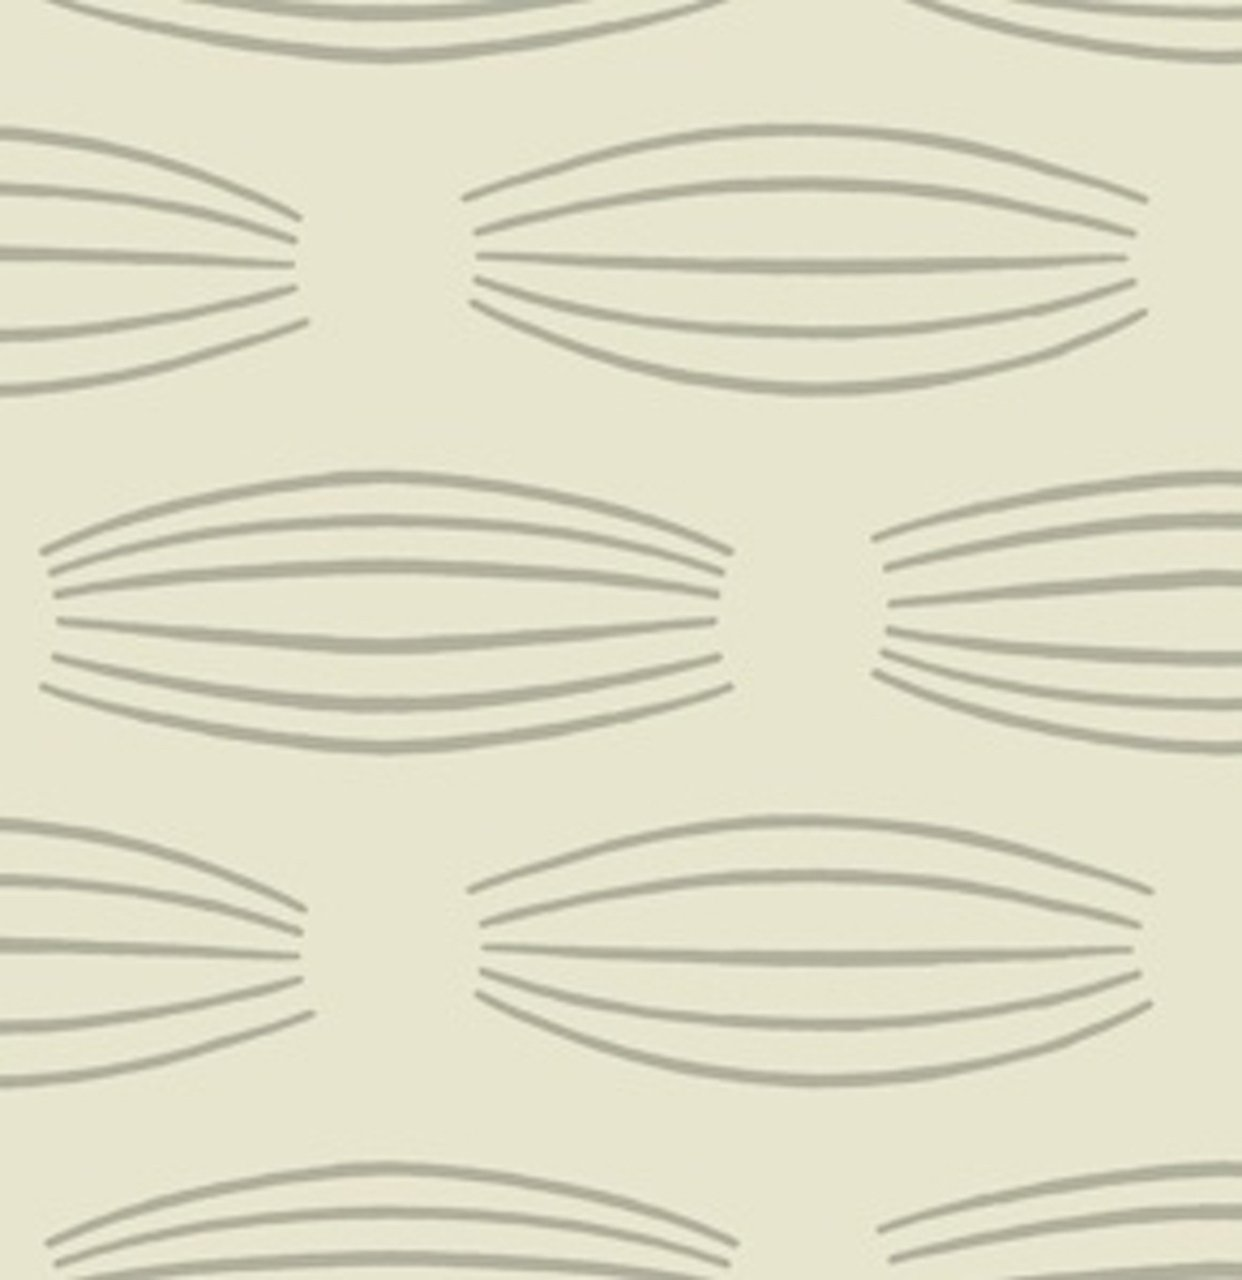 Parson Gray- Curious Nature - Sateen - Cocoons - Free Spirit SAPG001 Silver - 54 Wide Home Dec